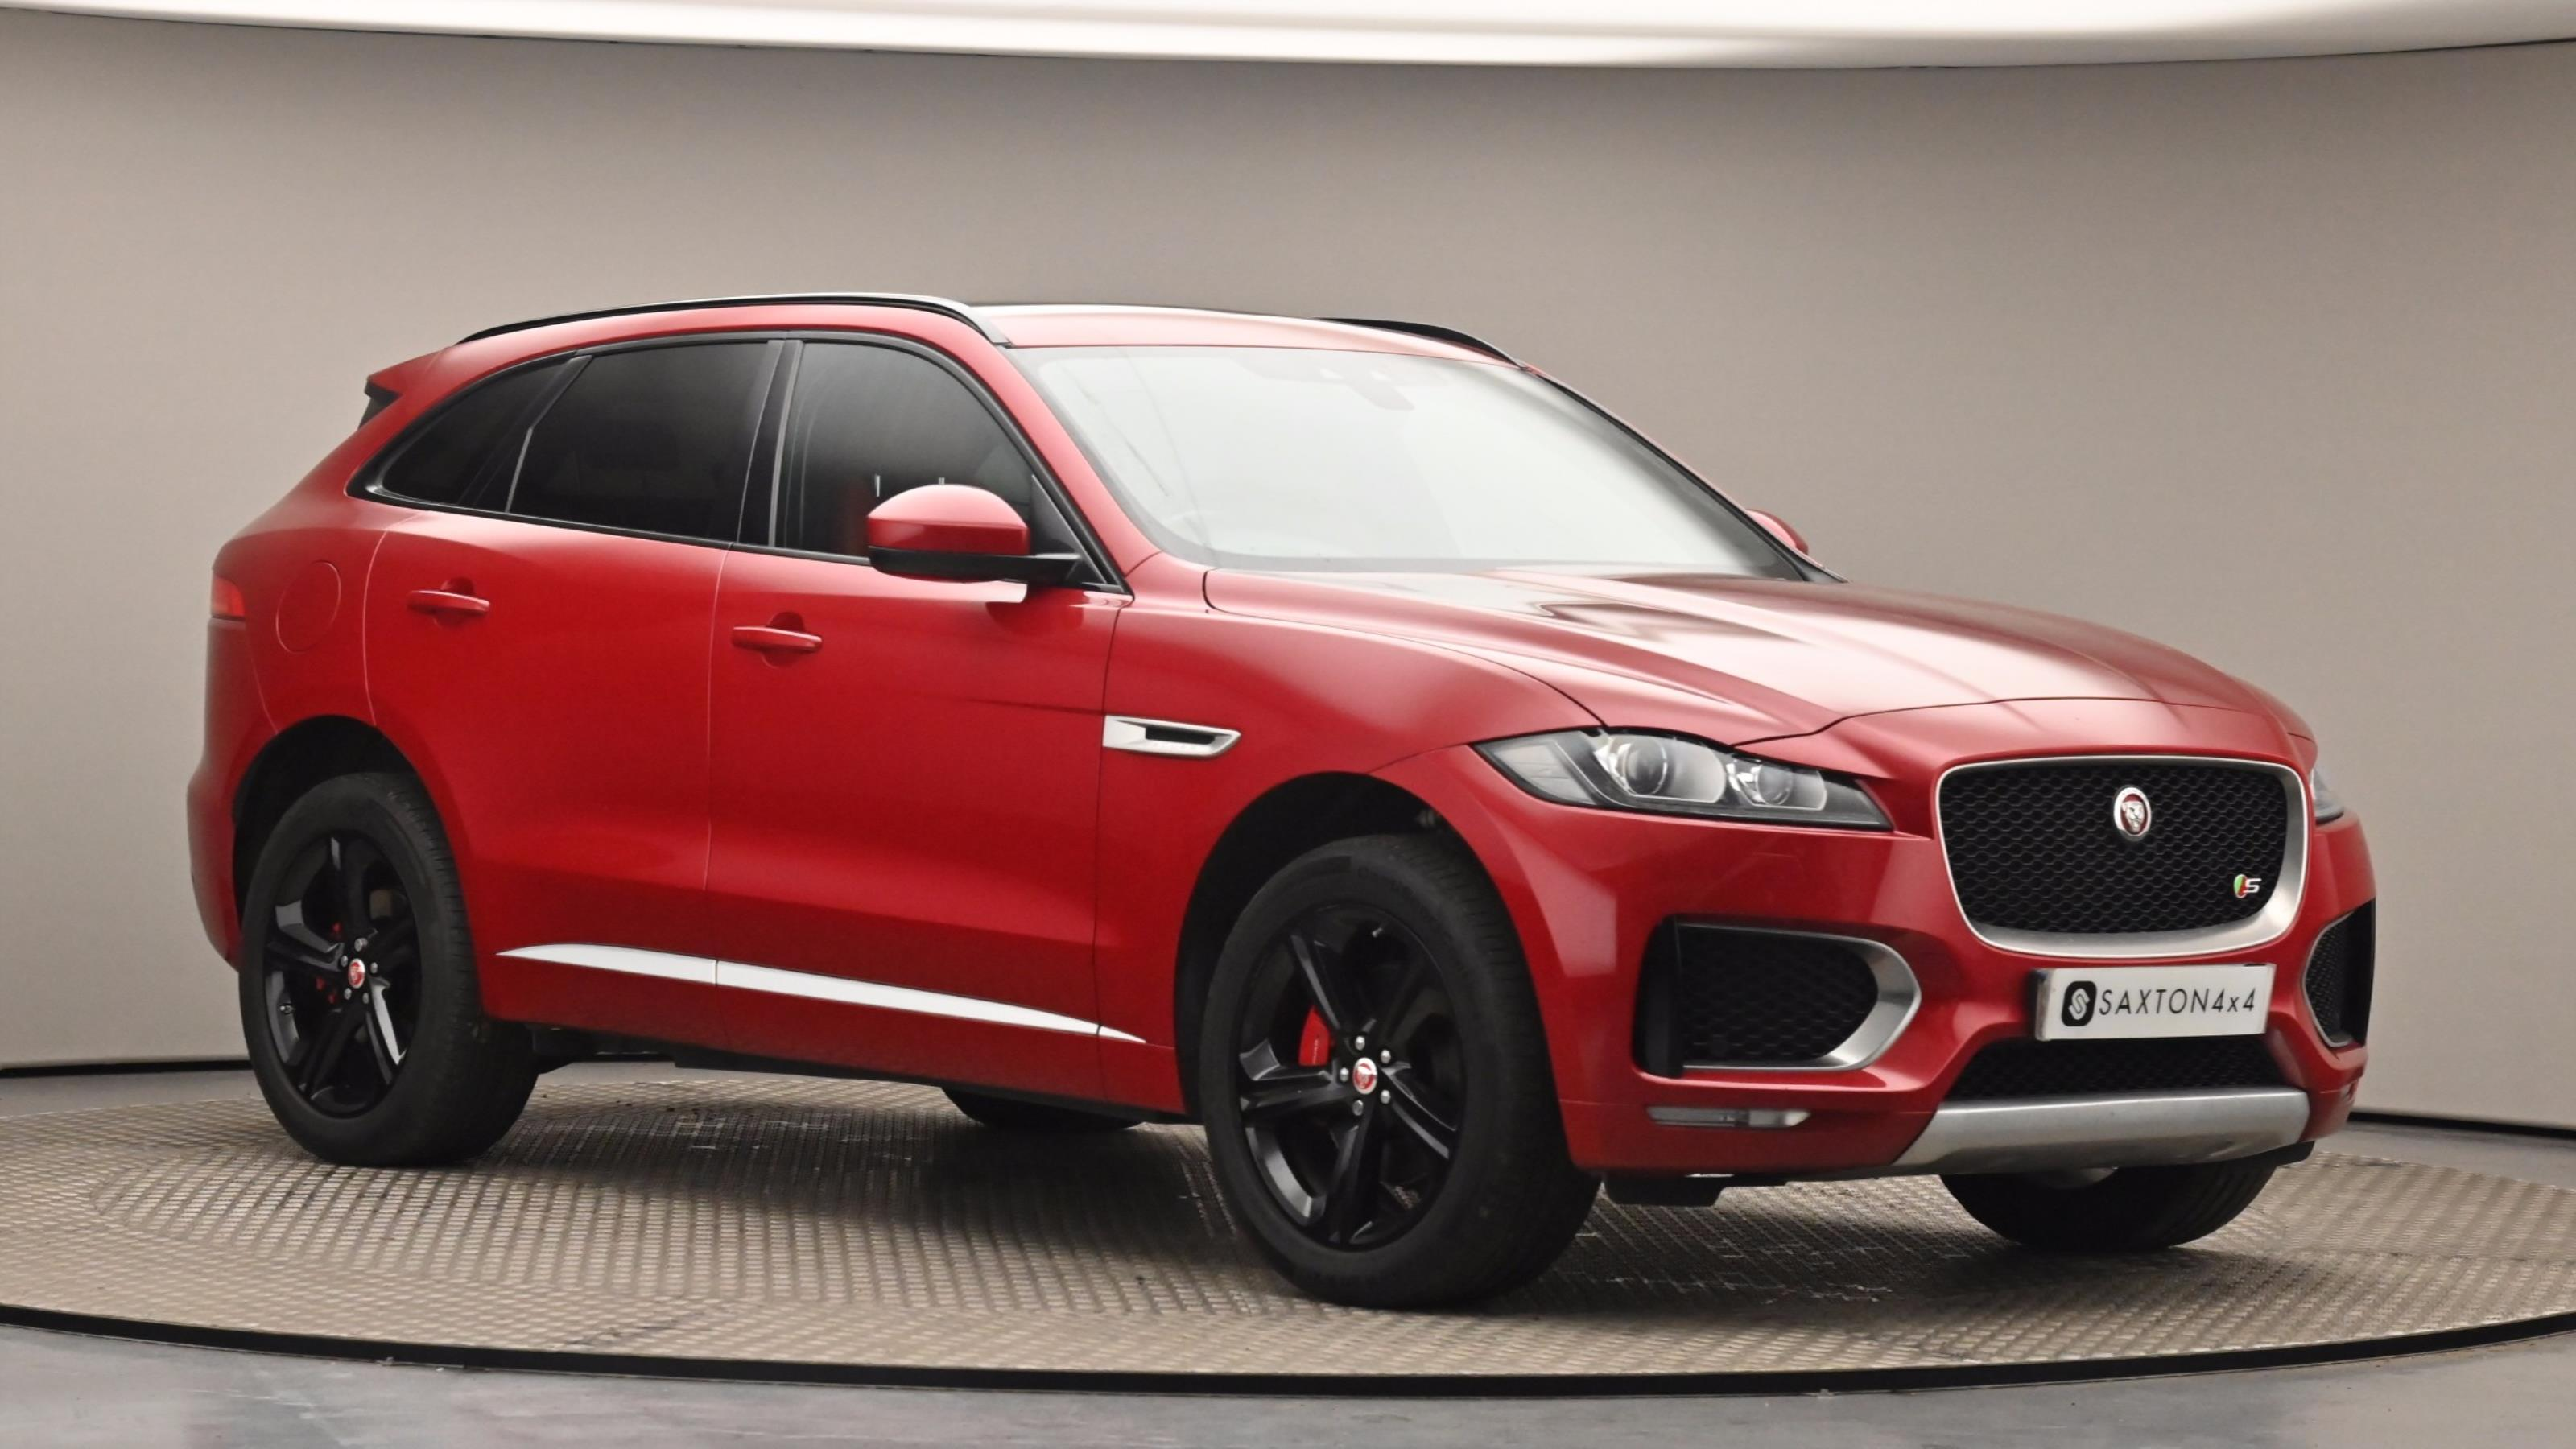 Used 2017 Jaguar F-PACE 3.0 Supercharged V6 S 5dr Auto AWD Red at Saxton4x4